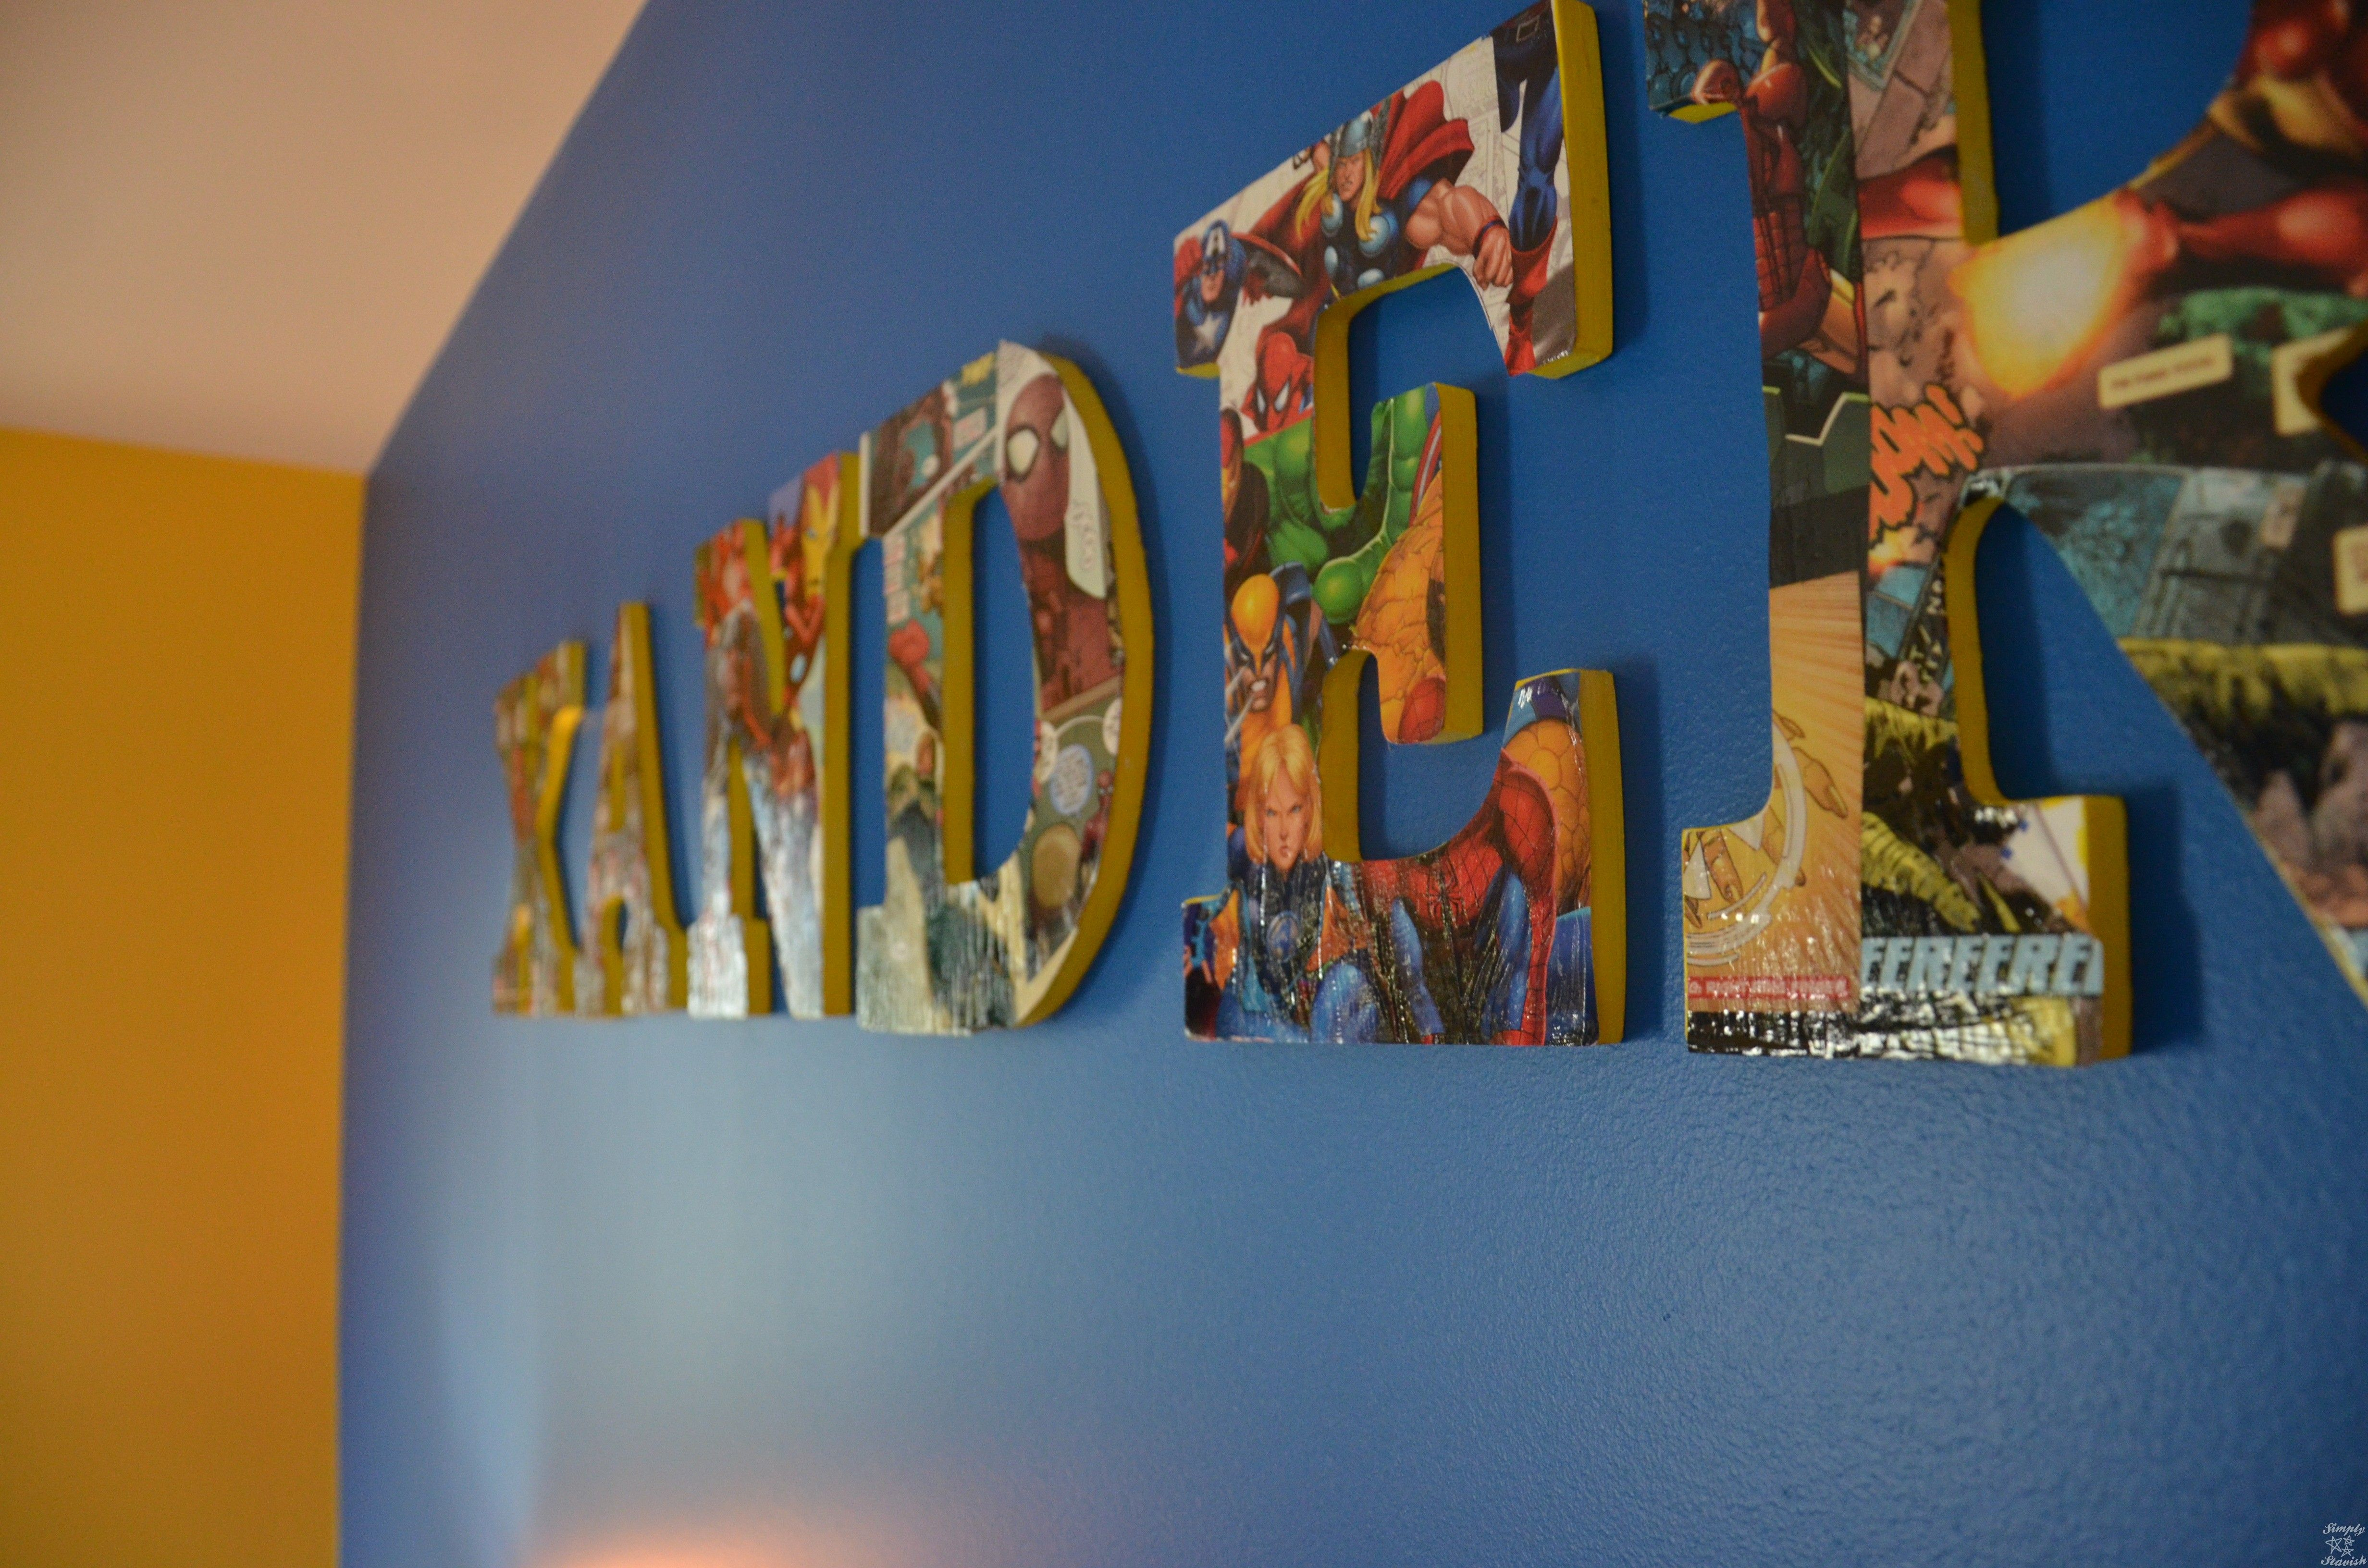 Comic Book Modge Podge Wooden Letter Name Collage Close Up